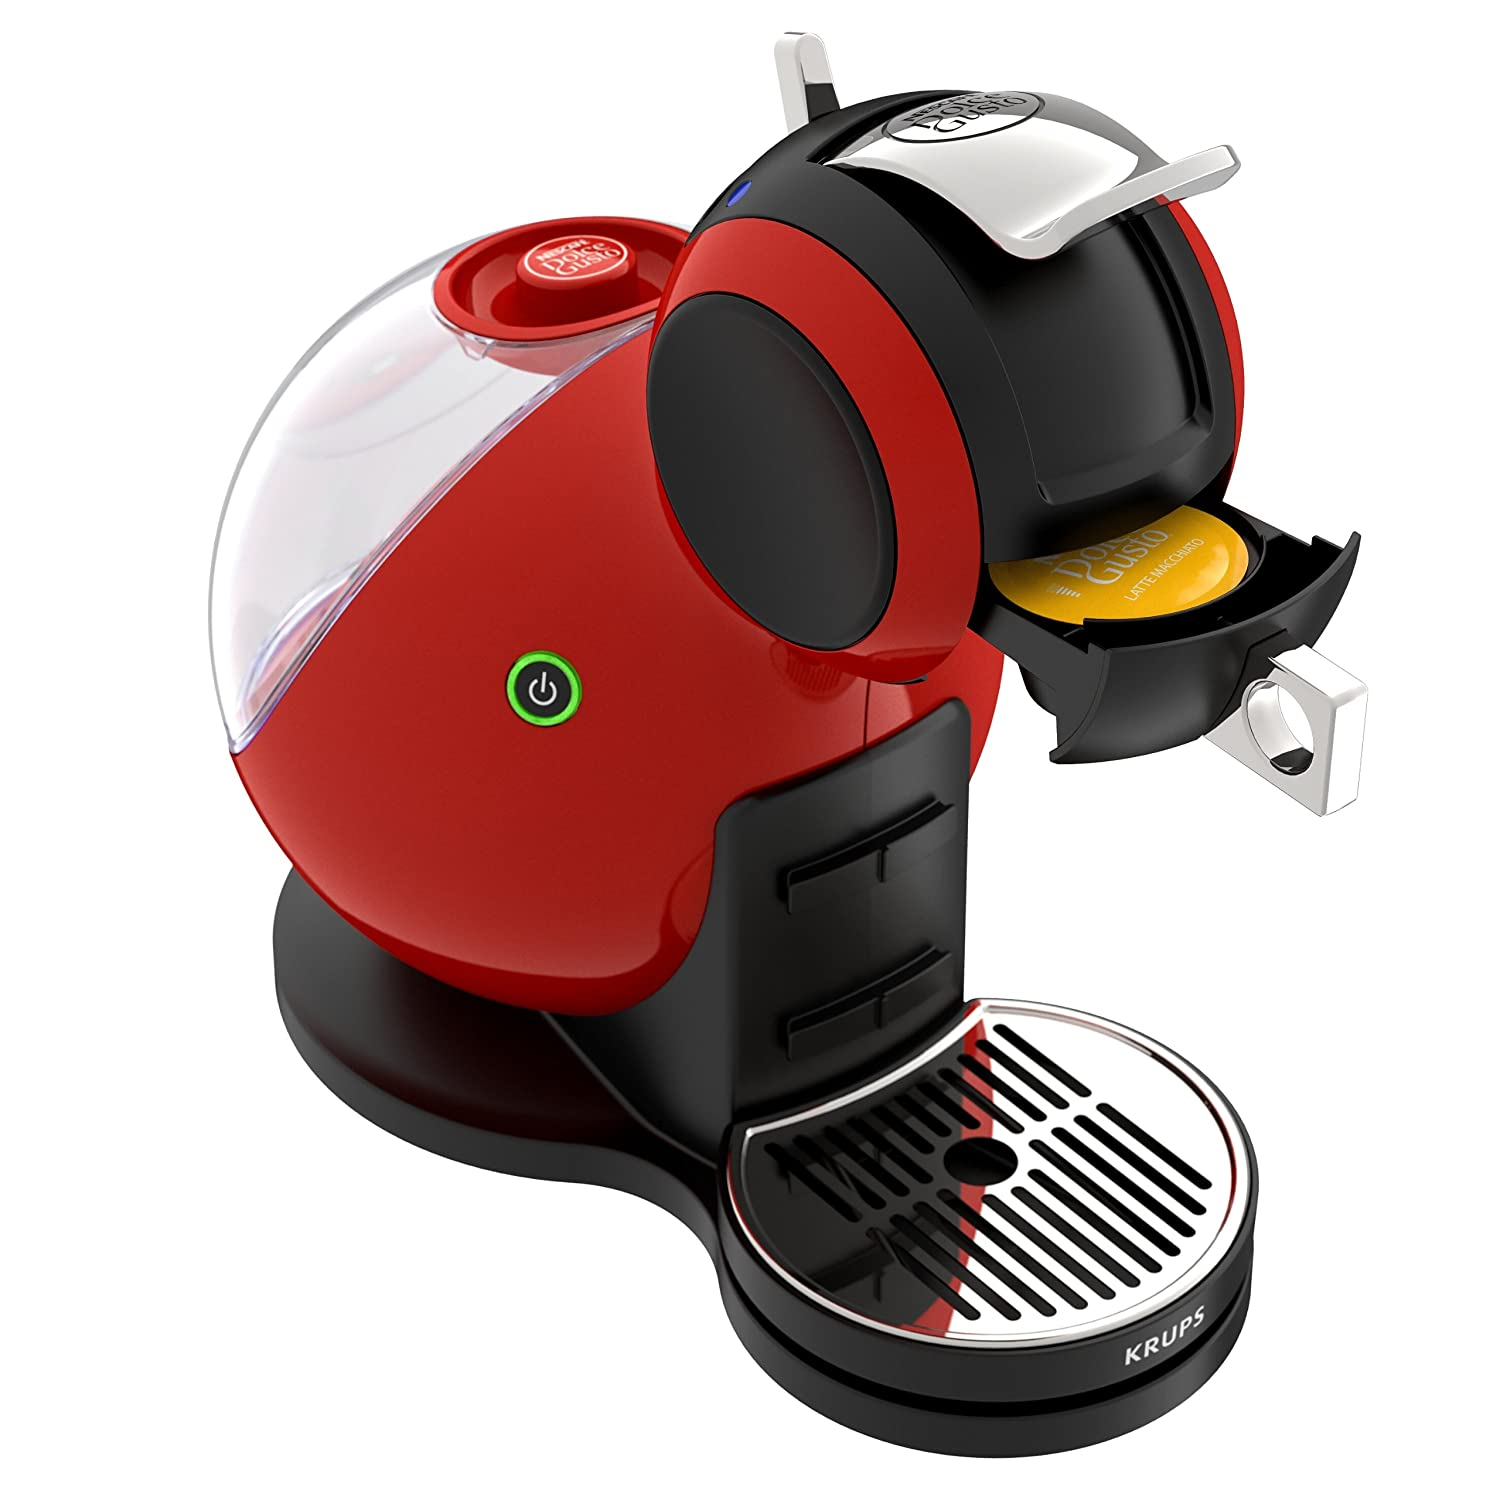 Amazon.com: KP 2205 Dolce Gusto Melody 3: Electronics